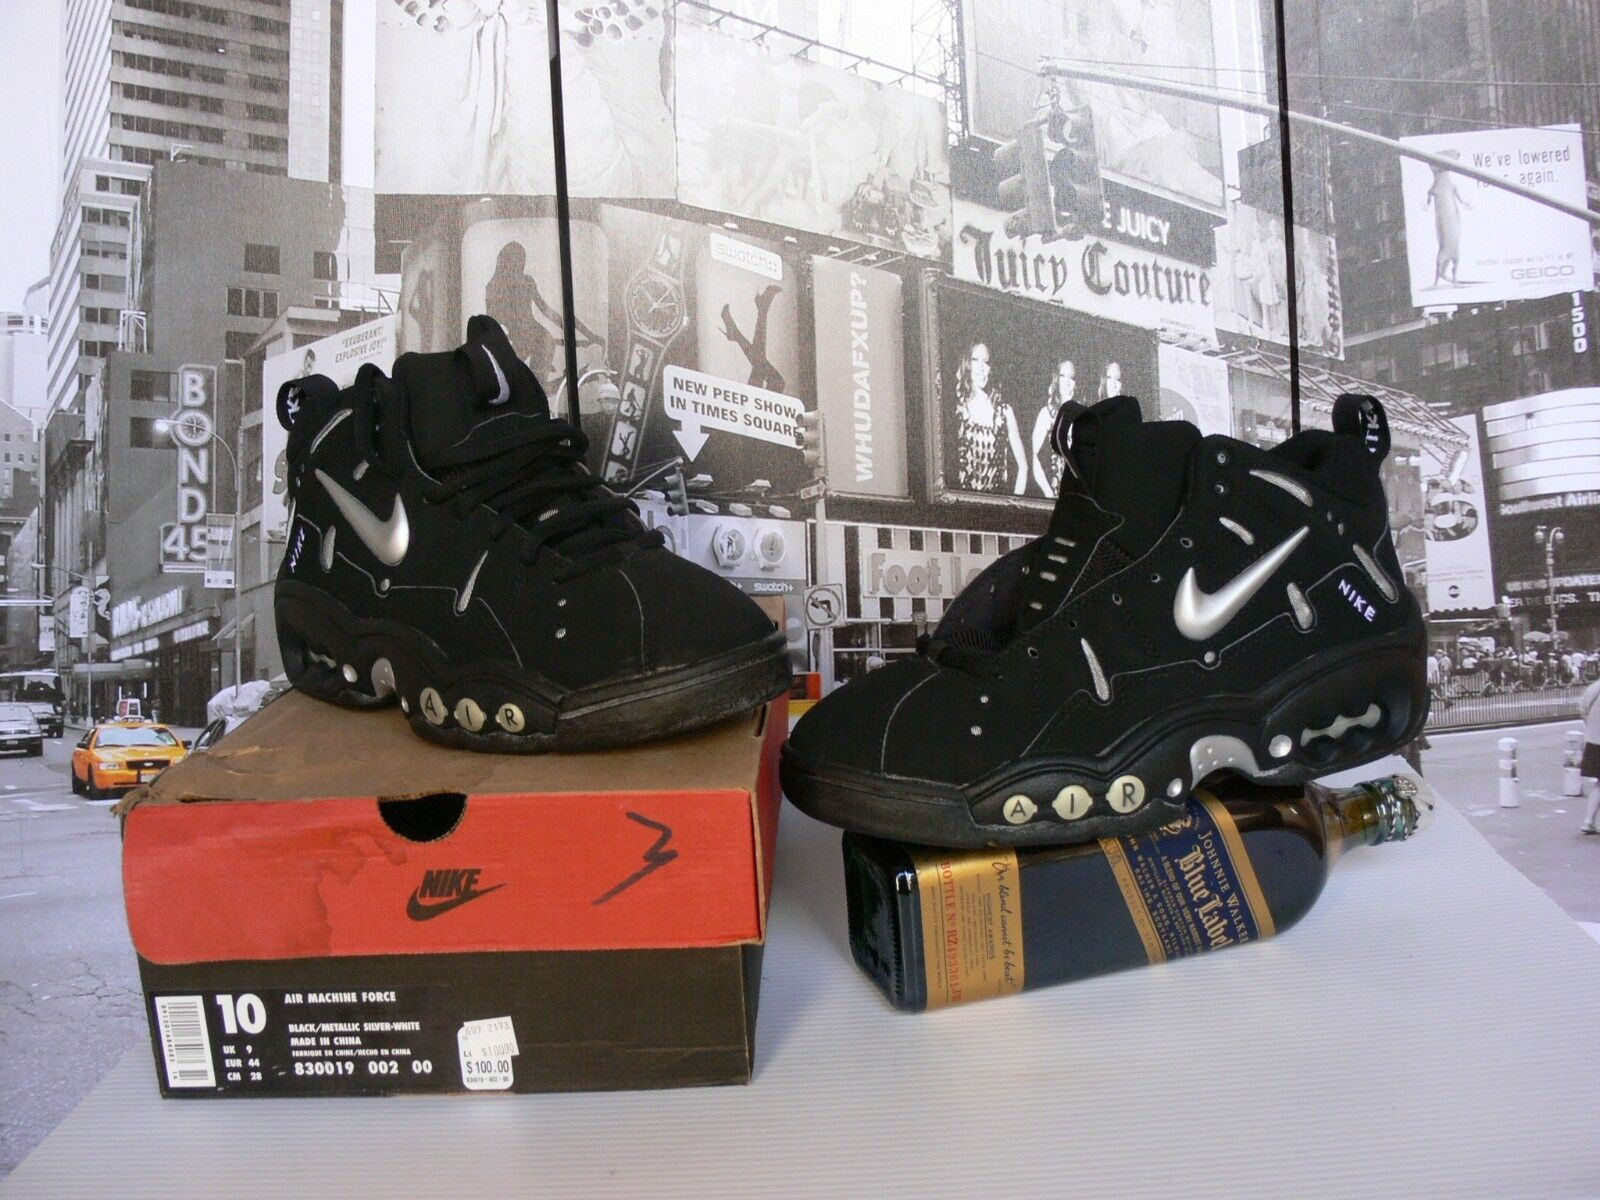 1997 NIKE MACHINE FORCE  OG SHOES  MEN'S US 10 / NEW WITH BOX Comfortable and good-looking